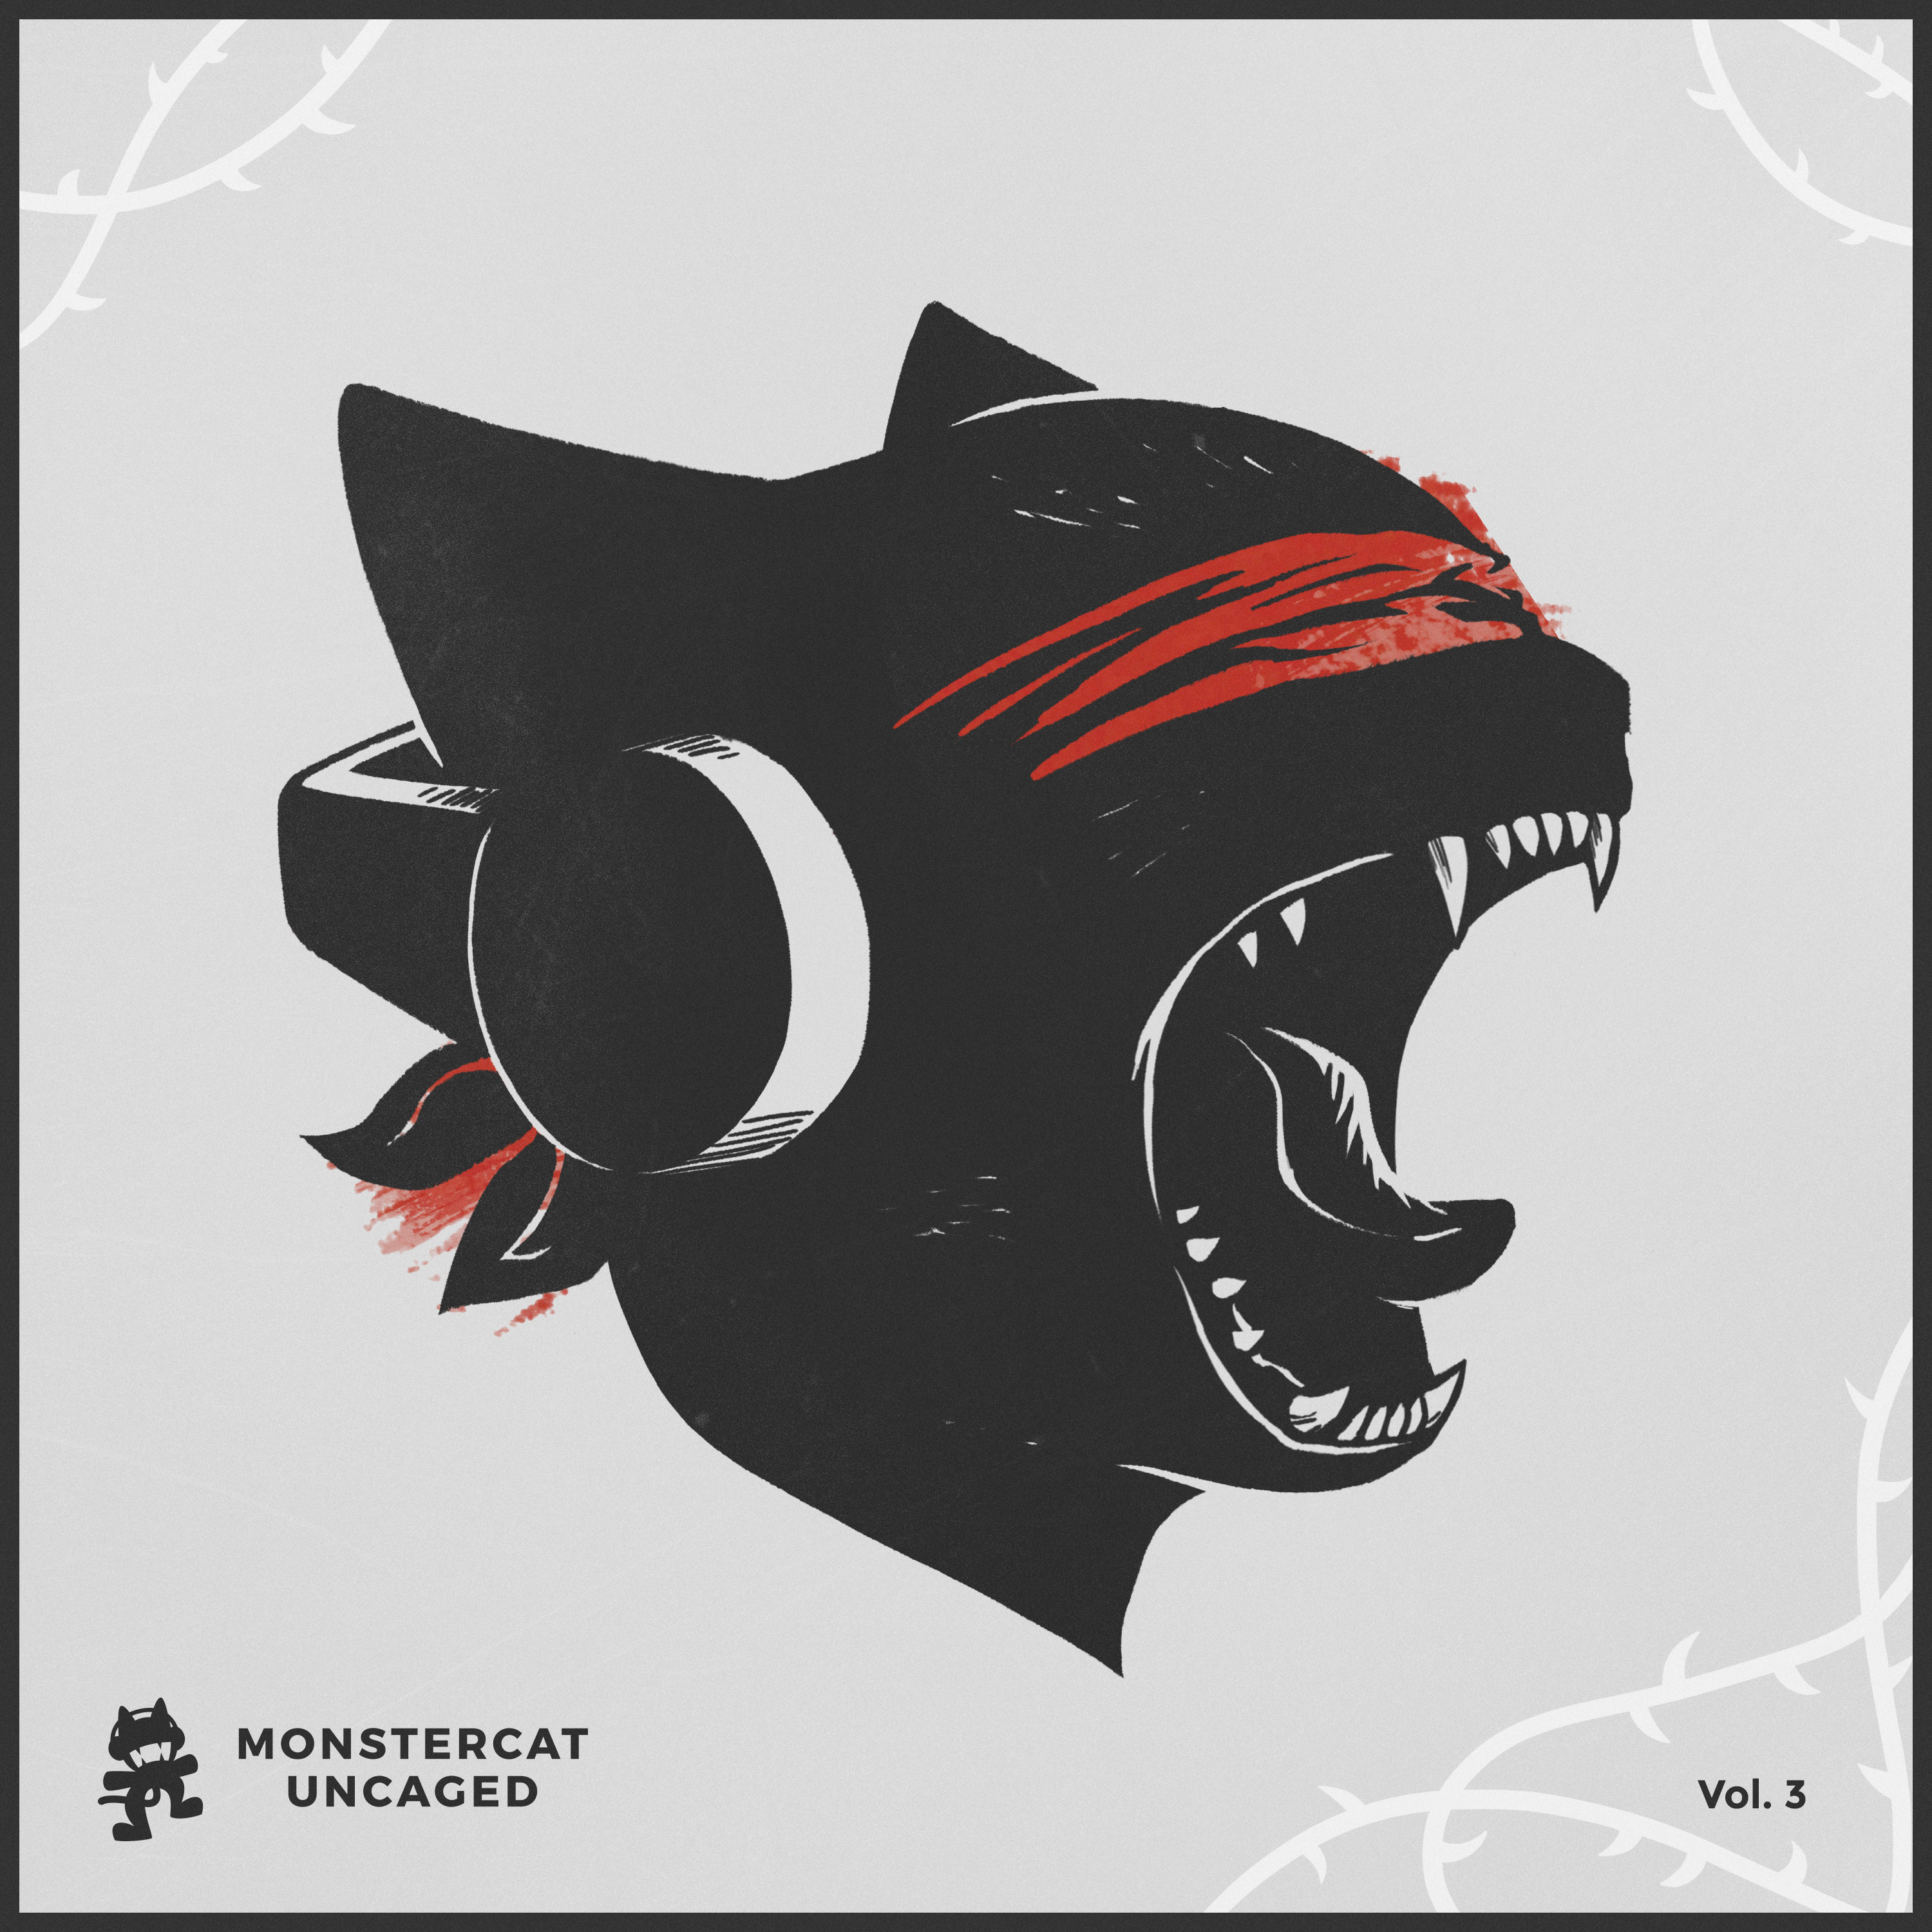 Monstercat Brings Aboard Ookay, Kill The Noise & More for Third